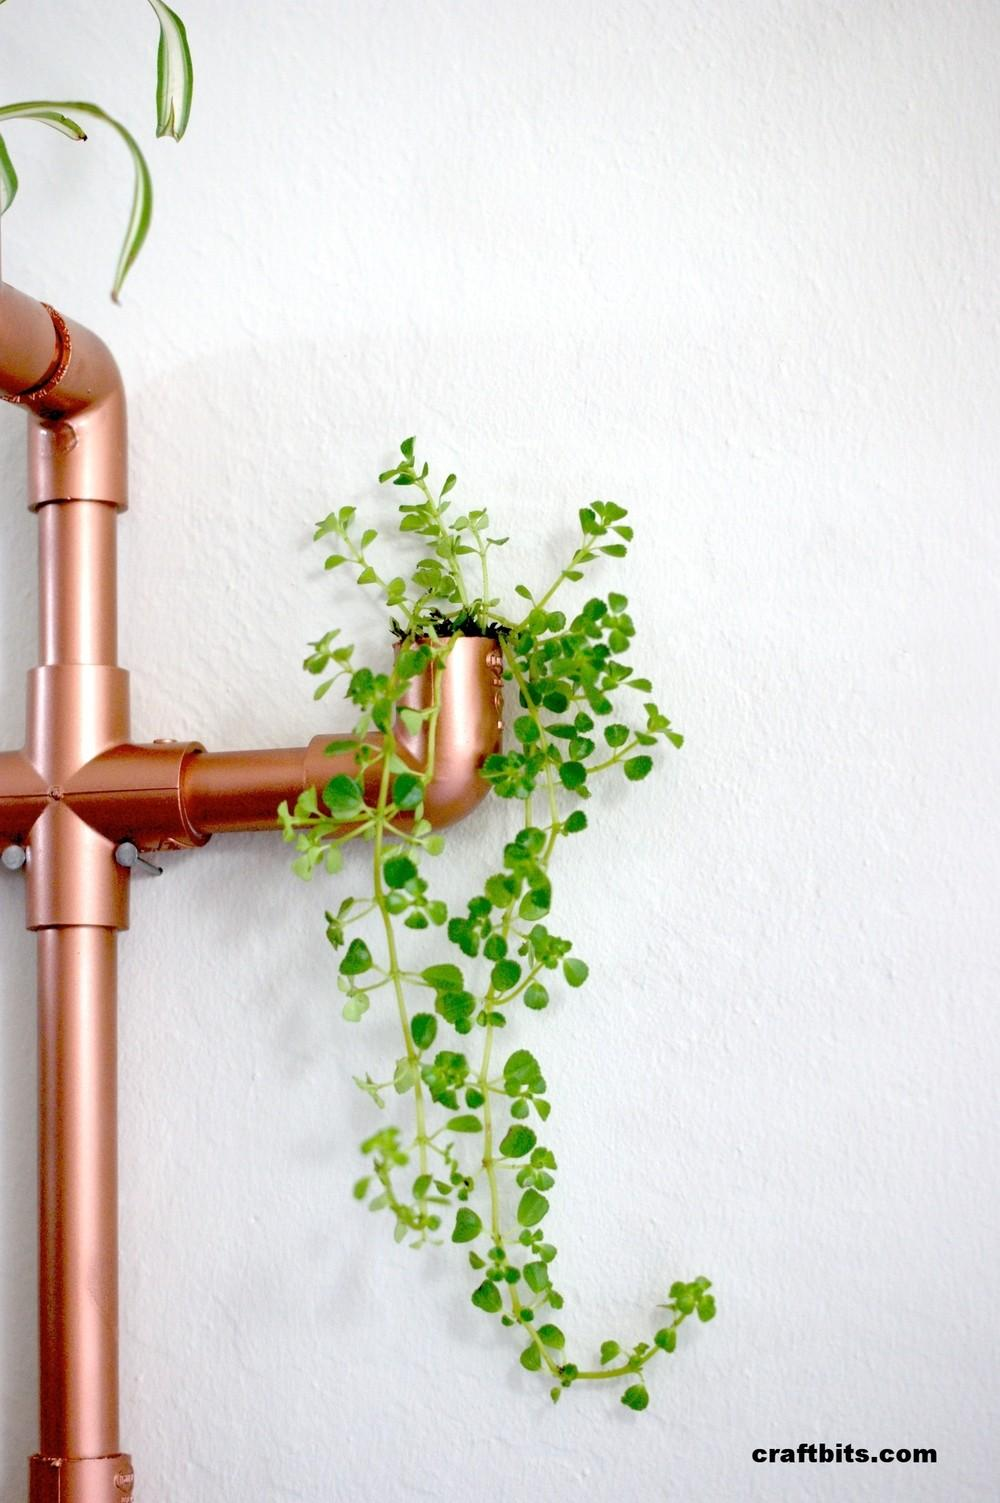 Diy Copper Pvc Wall Planter Charming Project